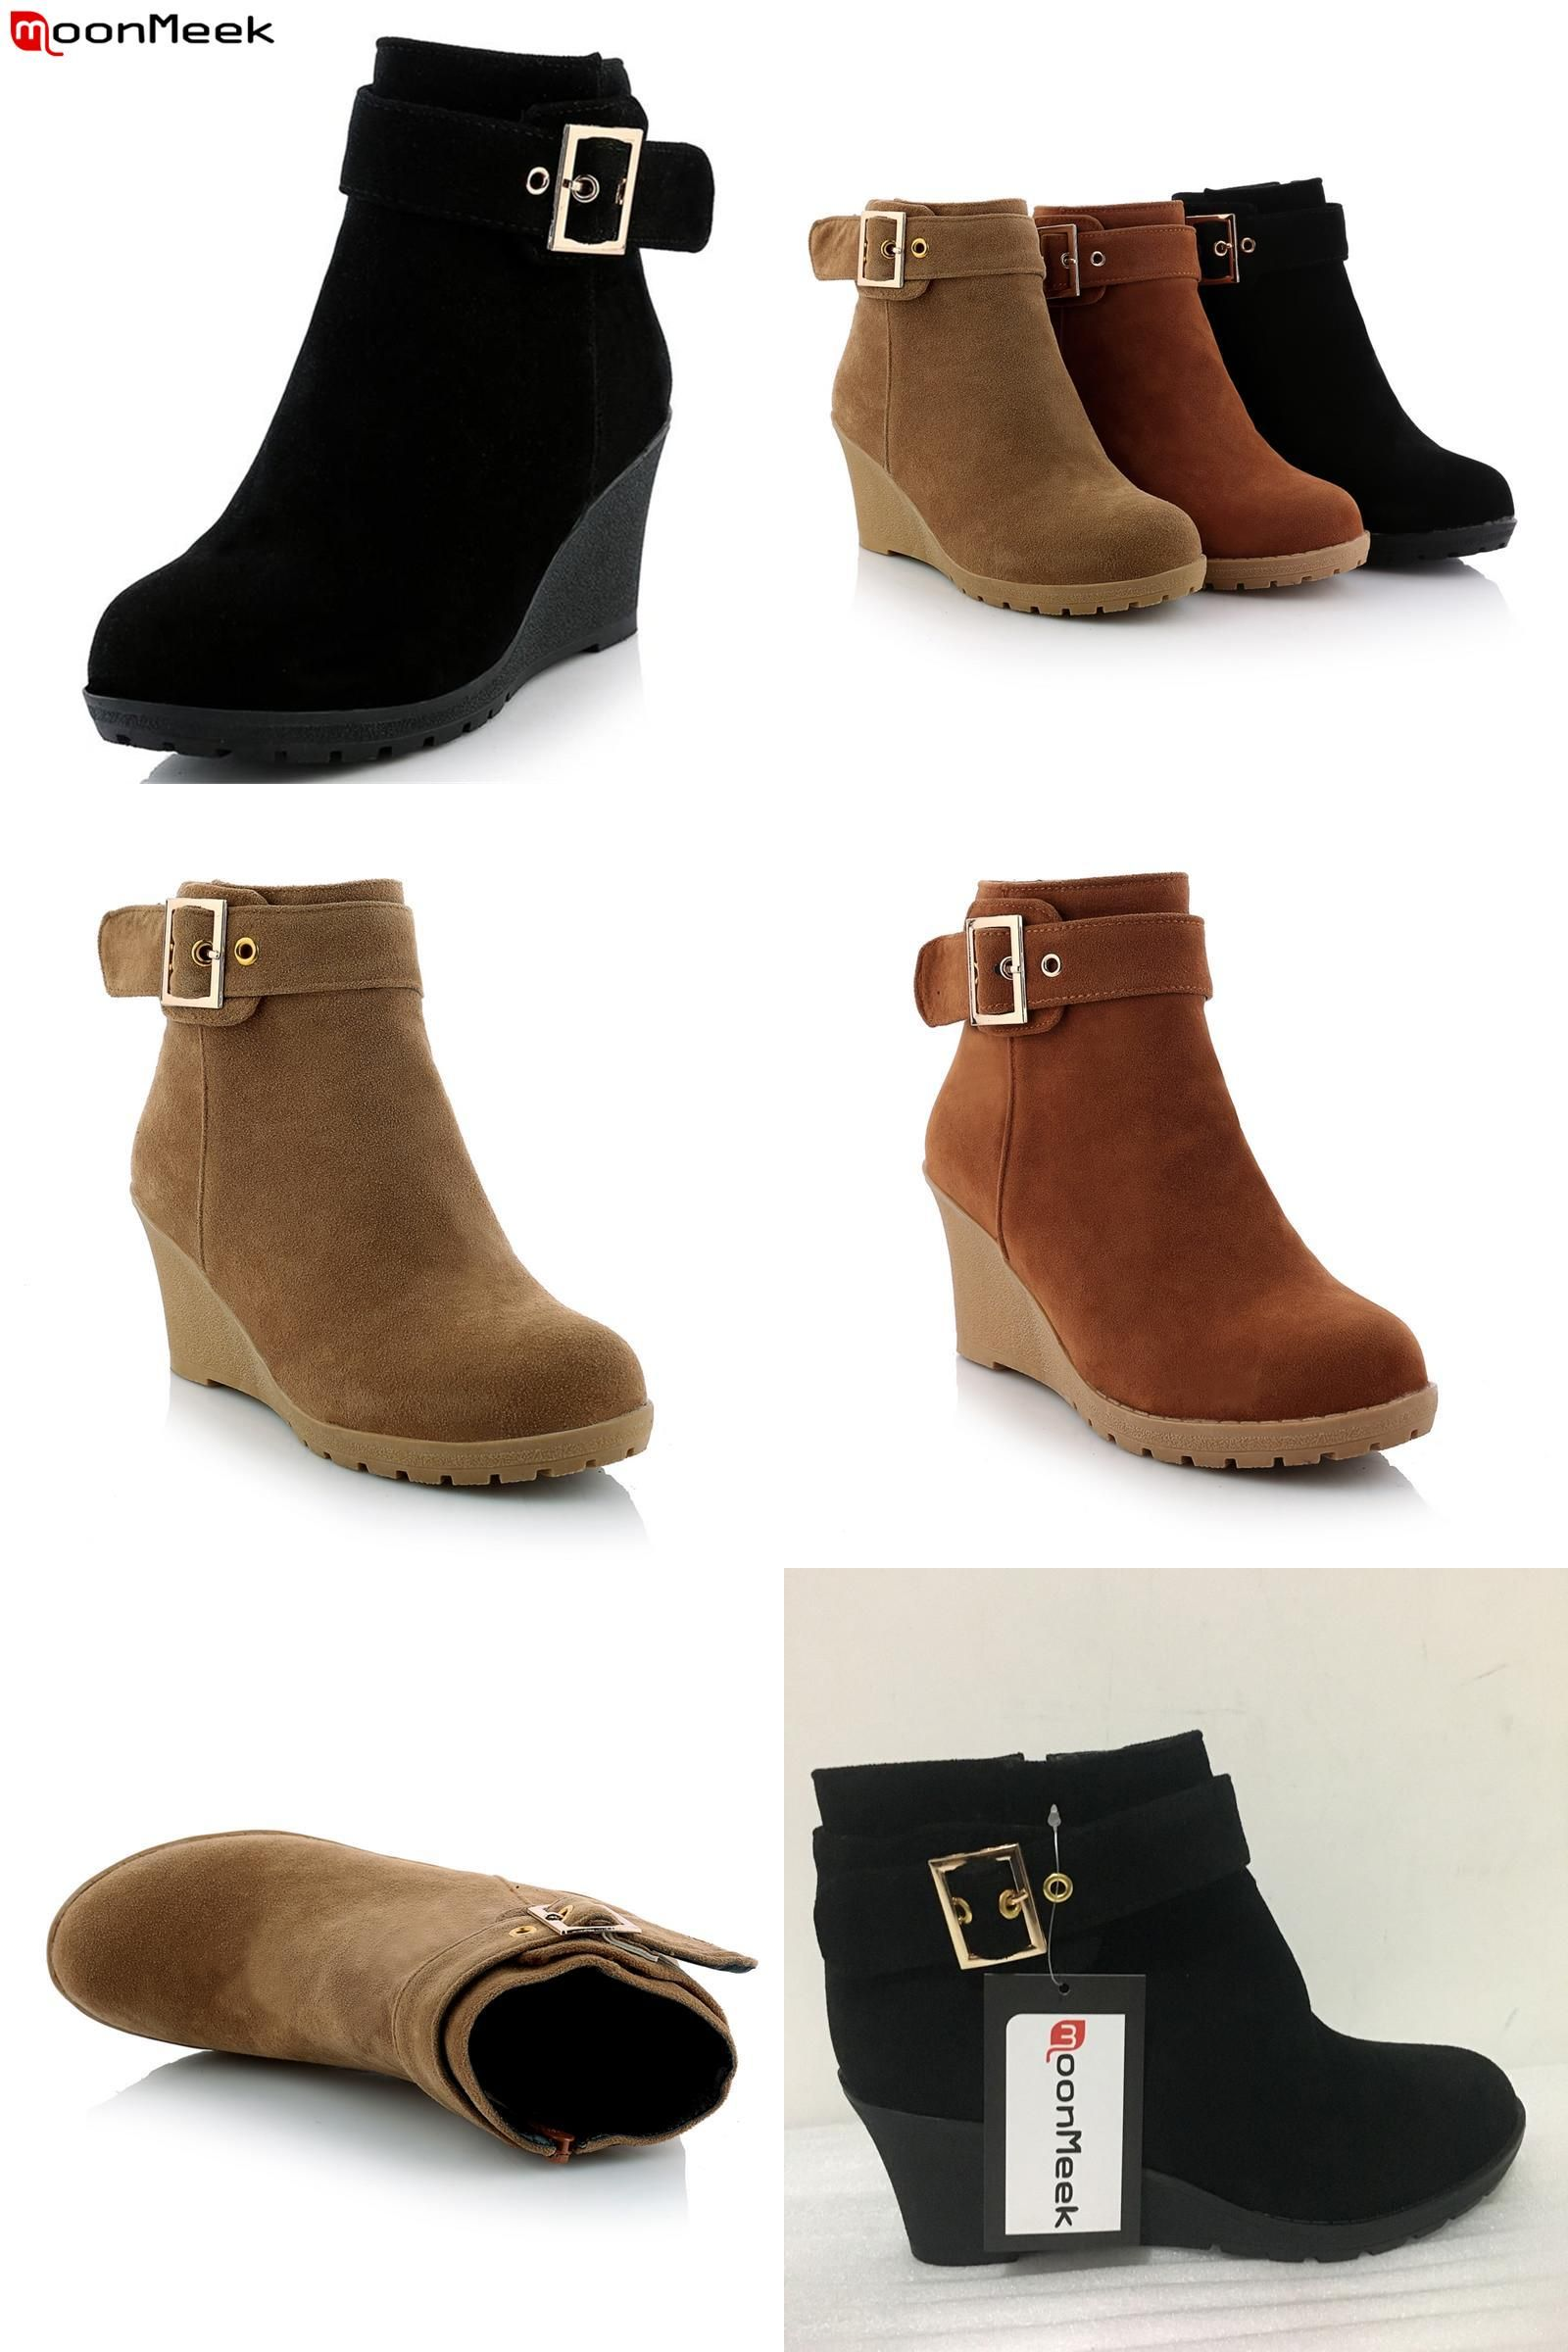 65c52ddfc1b0  Visit to Buy  MoonMeek New arrive hot sale high heels wedges winter boots  fashion